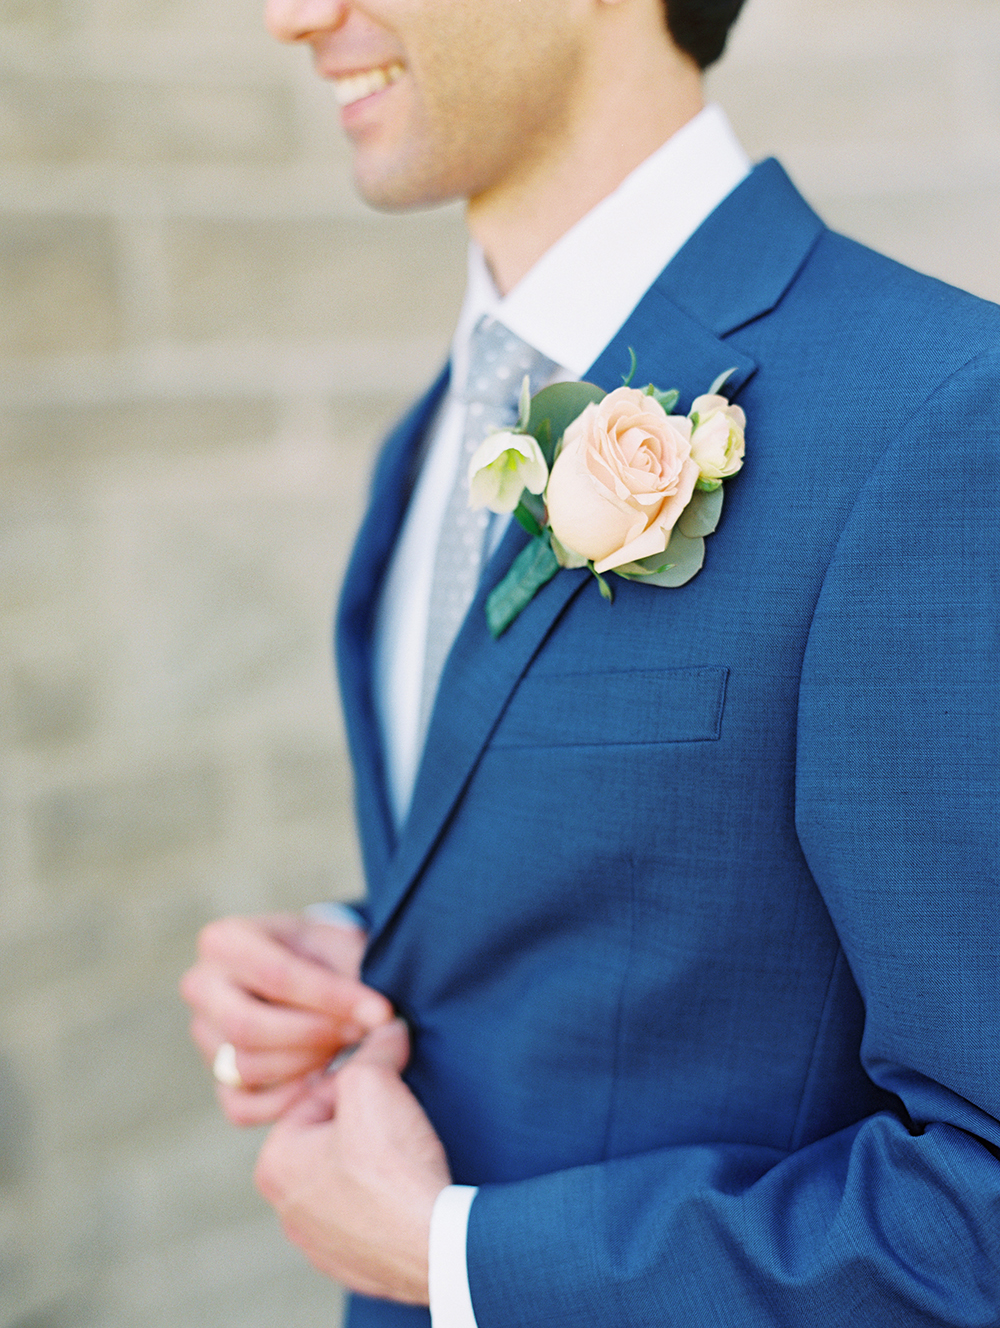 Romantic and Classic Greystone Mansion Wedding by Lucky Day Events Co. x Jordan Galindo Photography / Navy Groom's Suit